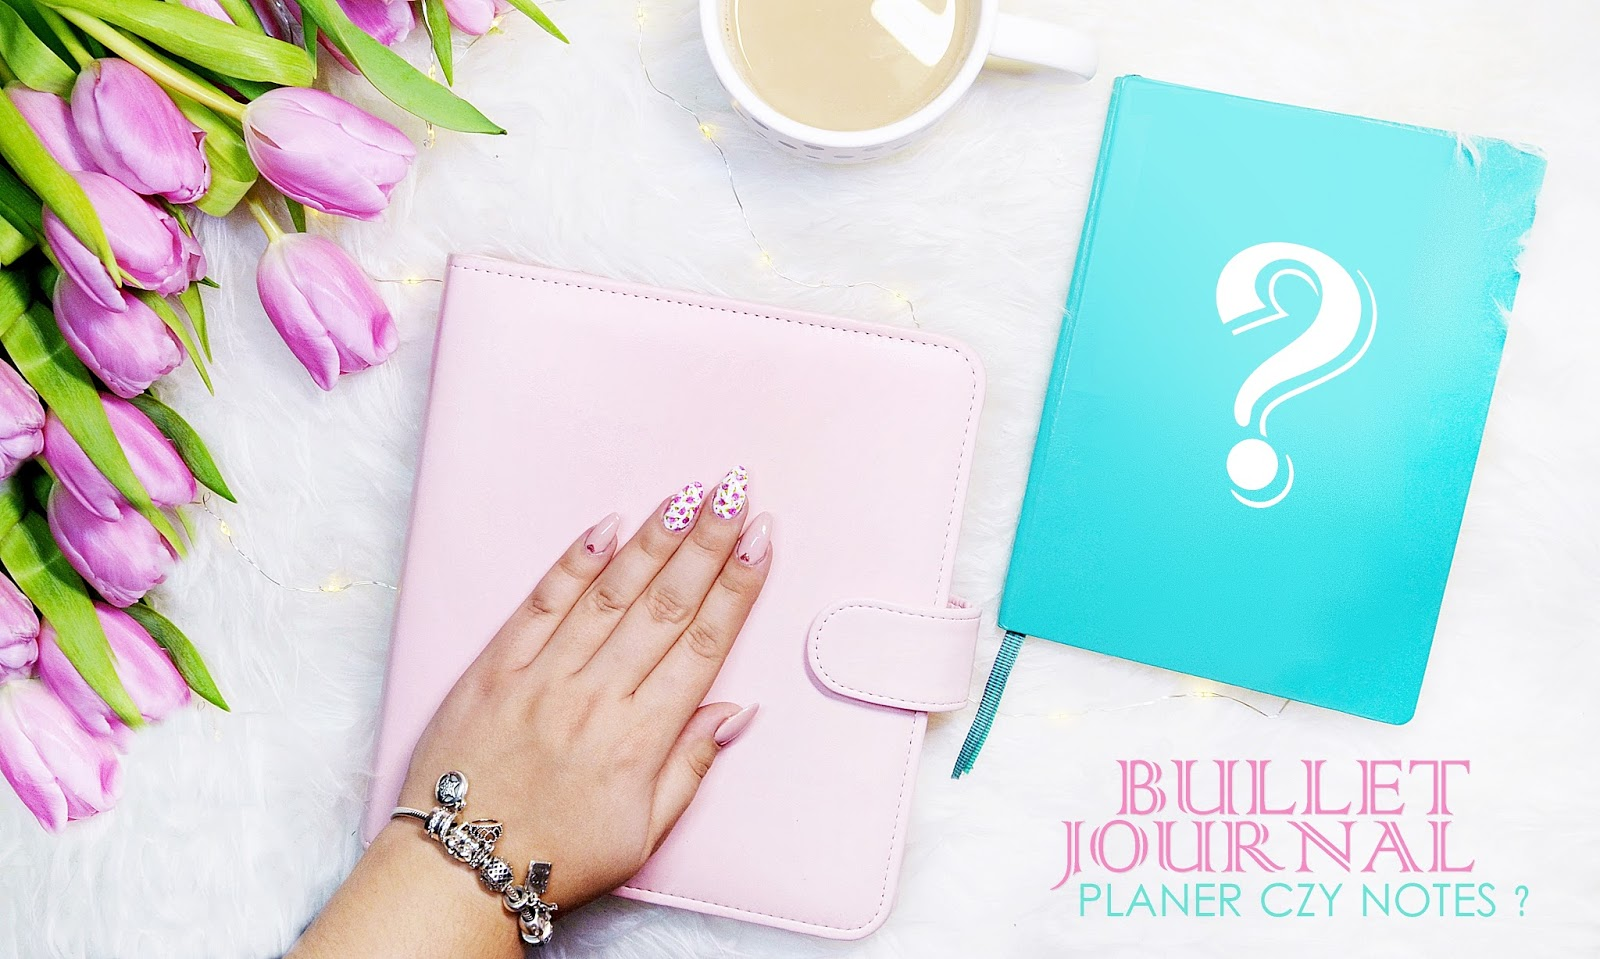 BULLET JOURNAL PLANER CZY NOTES?